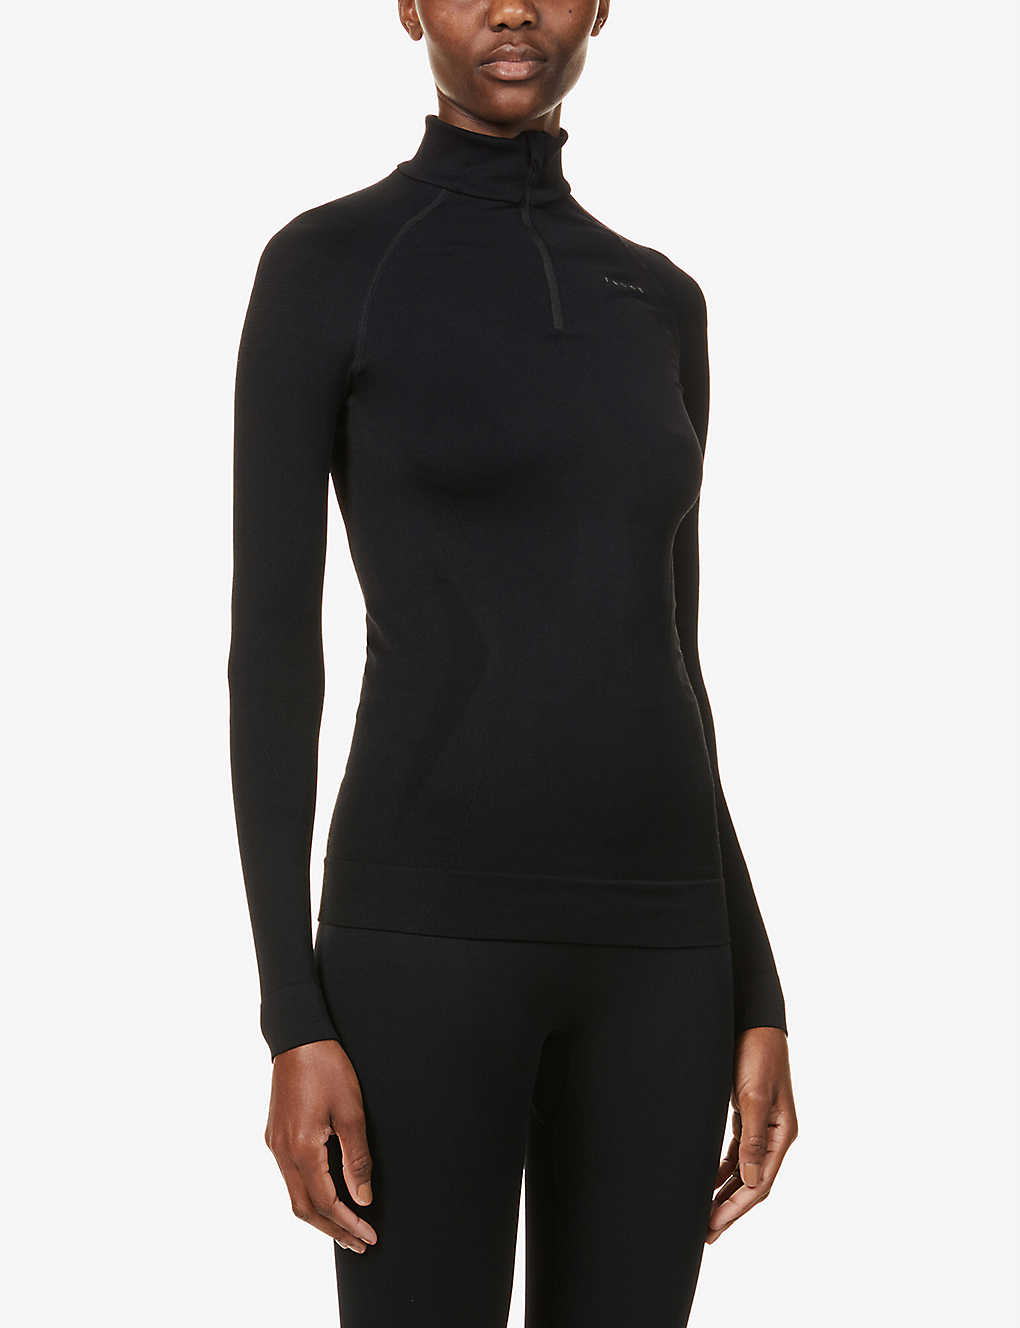 FALKE ERGONOMIC SPORT SYSTEM: Maximum Warm high-neck stretch-jersey top